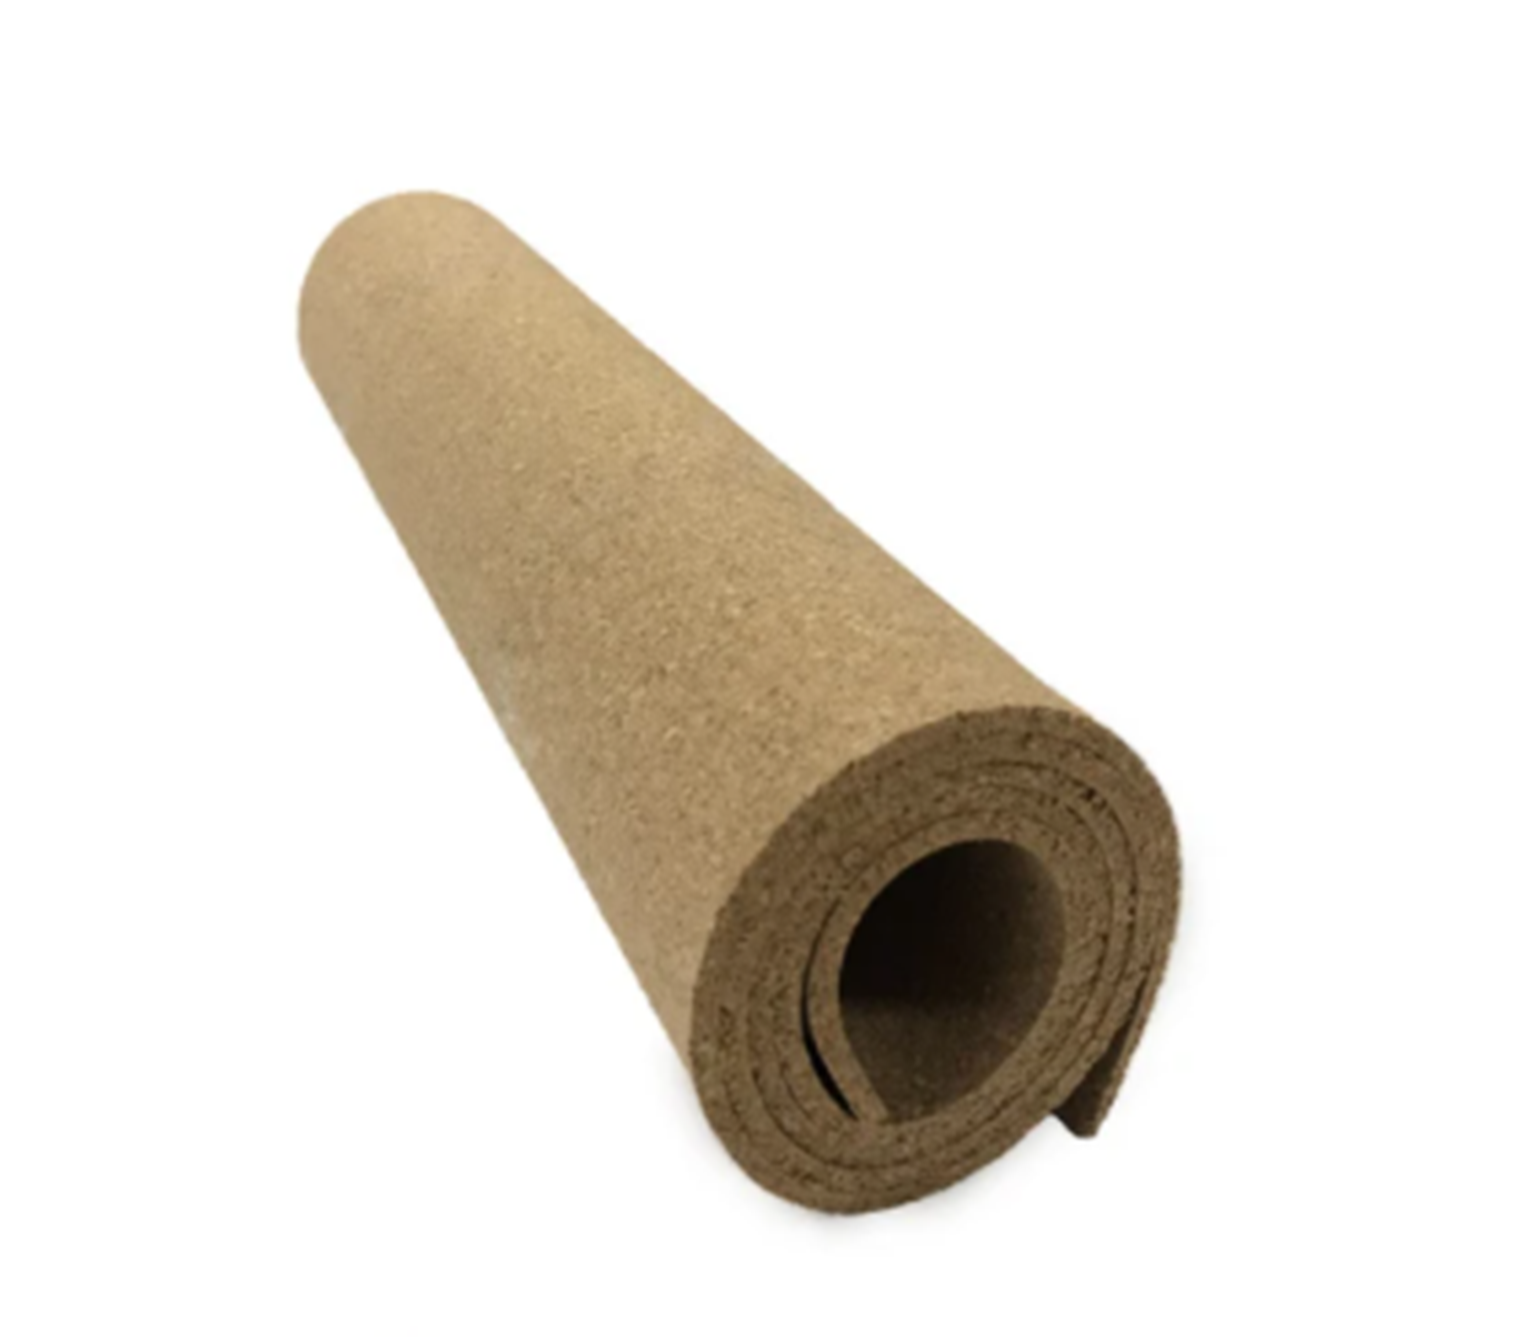 High Quality Cork Roll - 915mm x 610mm - 1.5mm Thick